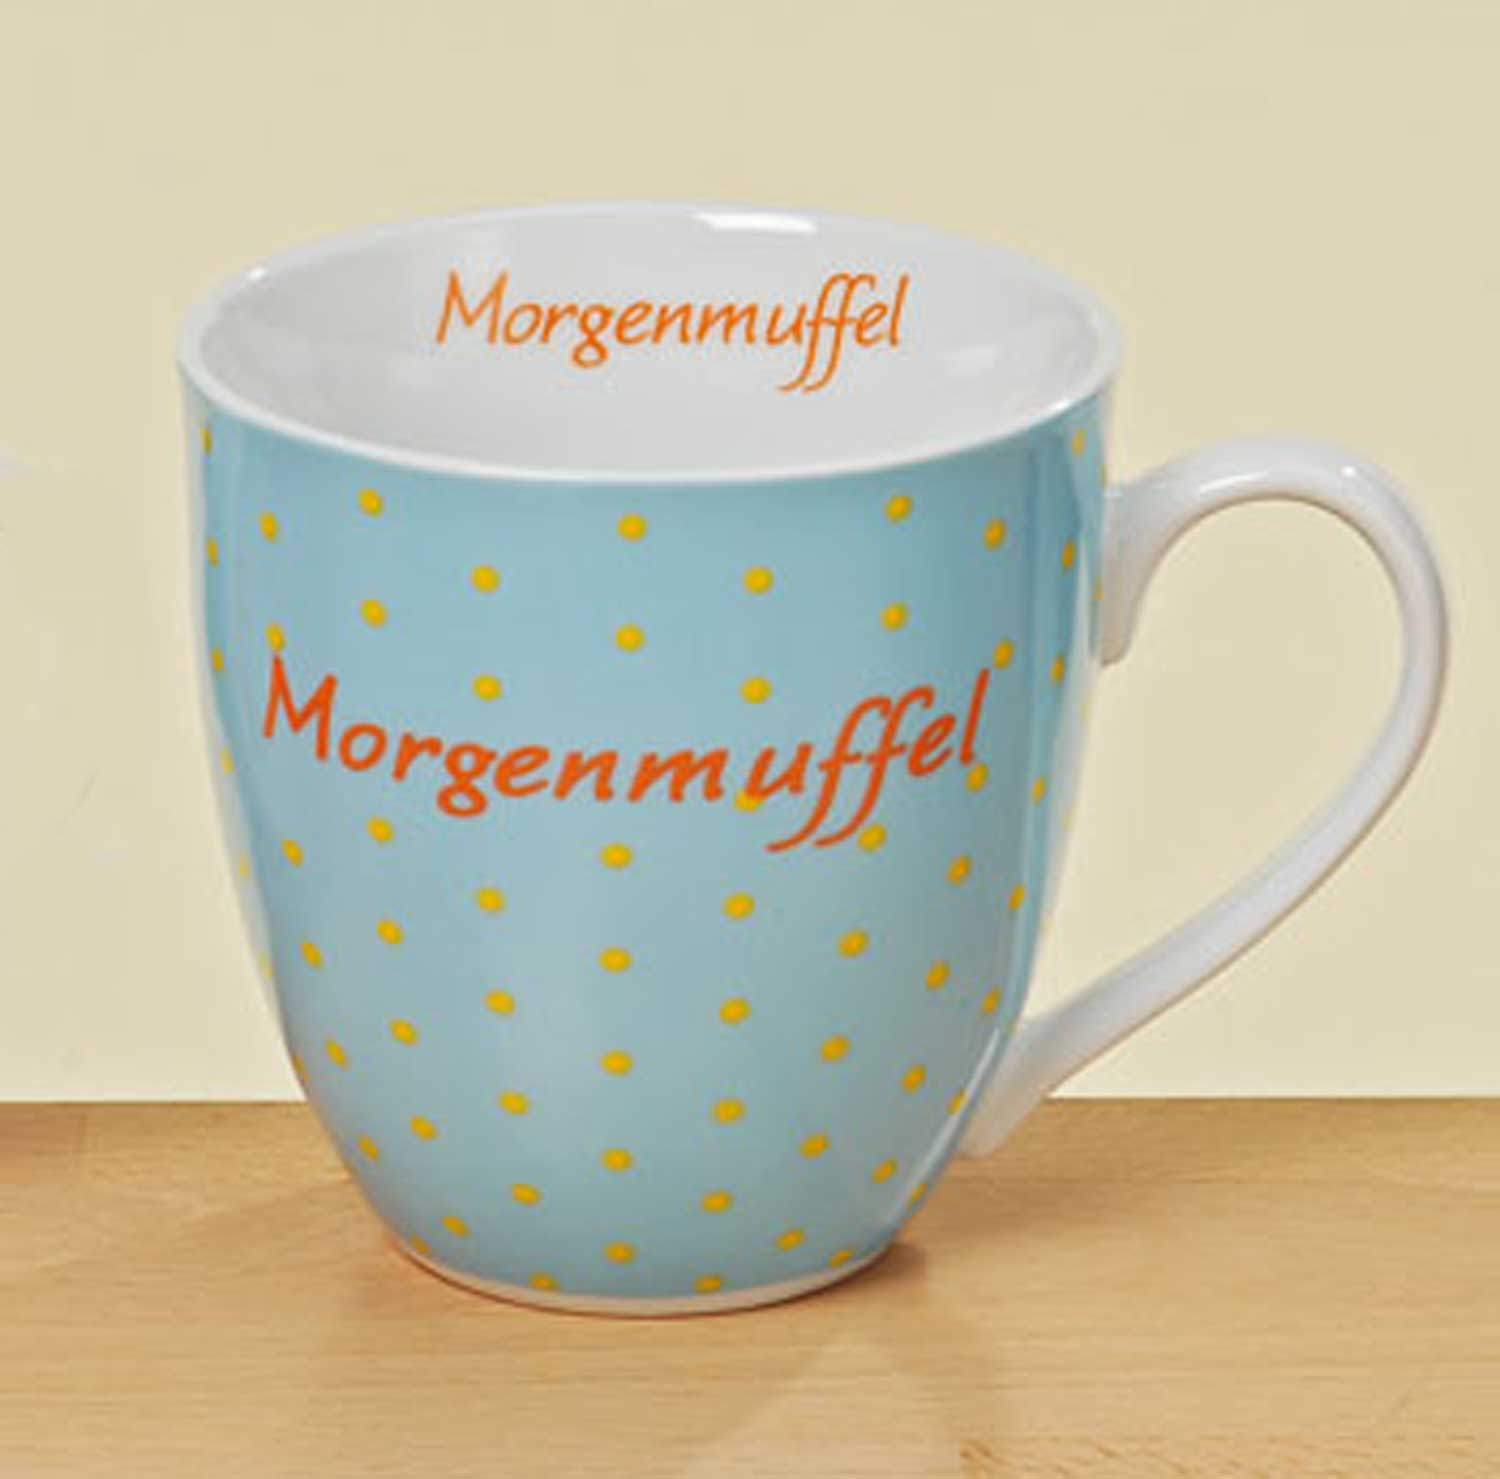 xxl tasse morgenmuffel porzellan blau h 11 cm kaffeetasse becher teetasse ebay. Black Bedroom Furniture Sets. Home Design Ideas